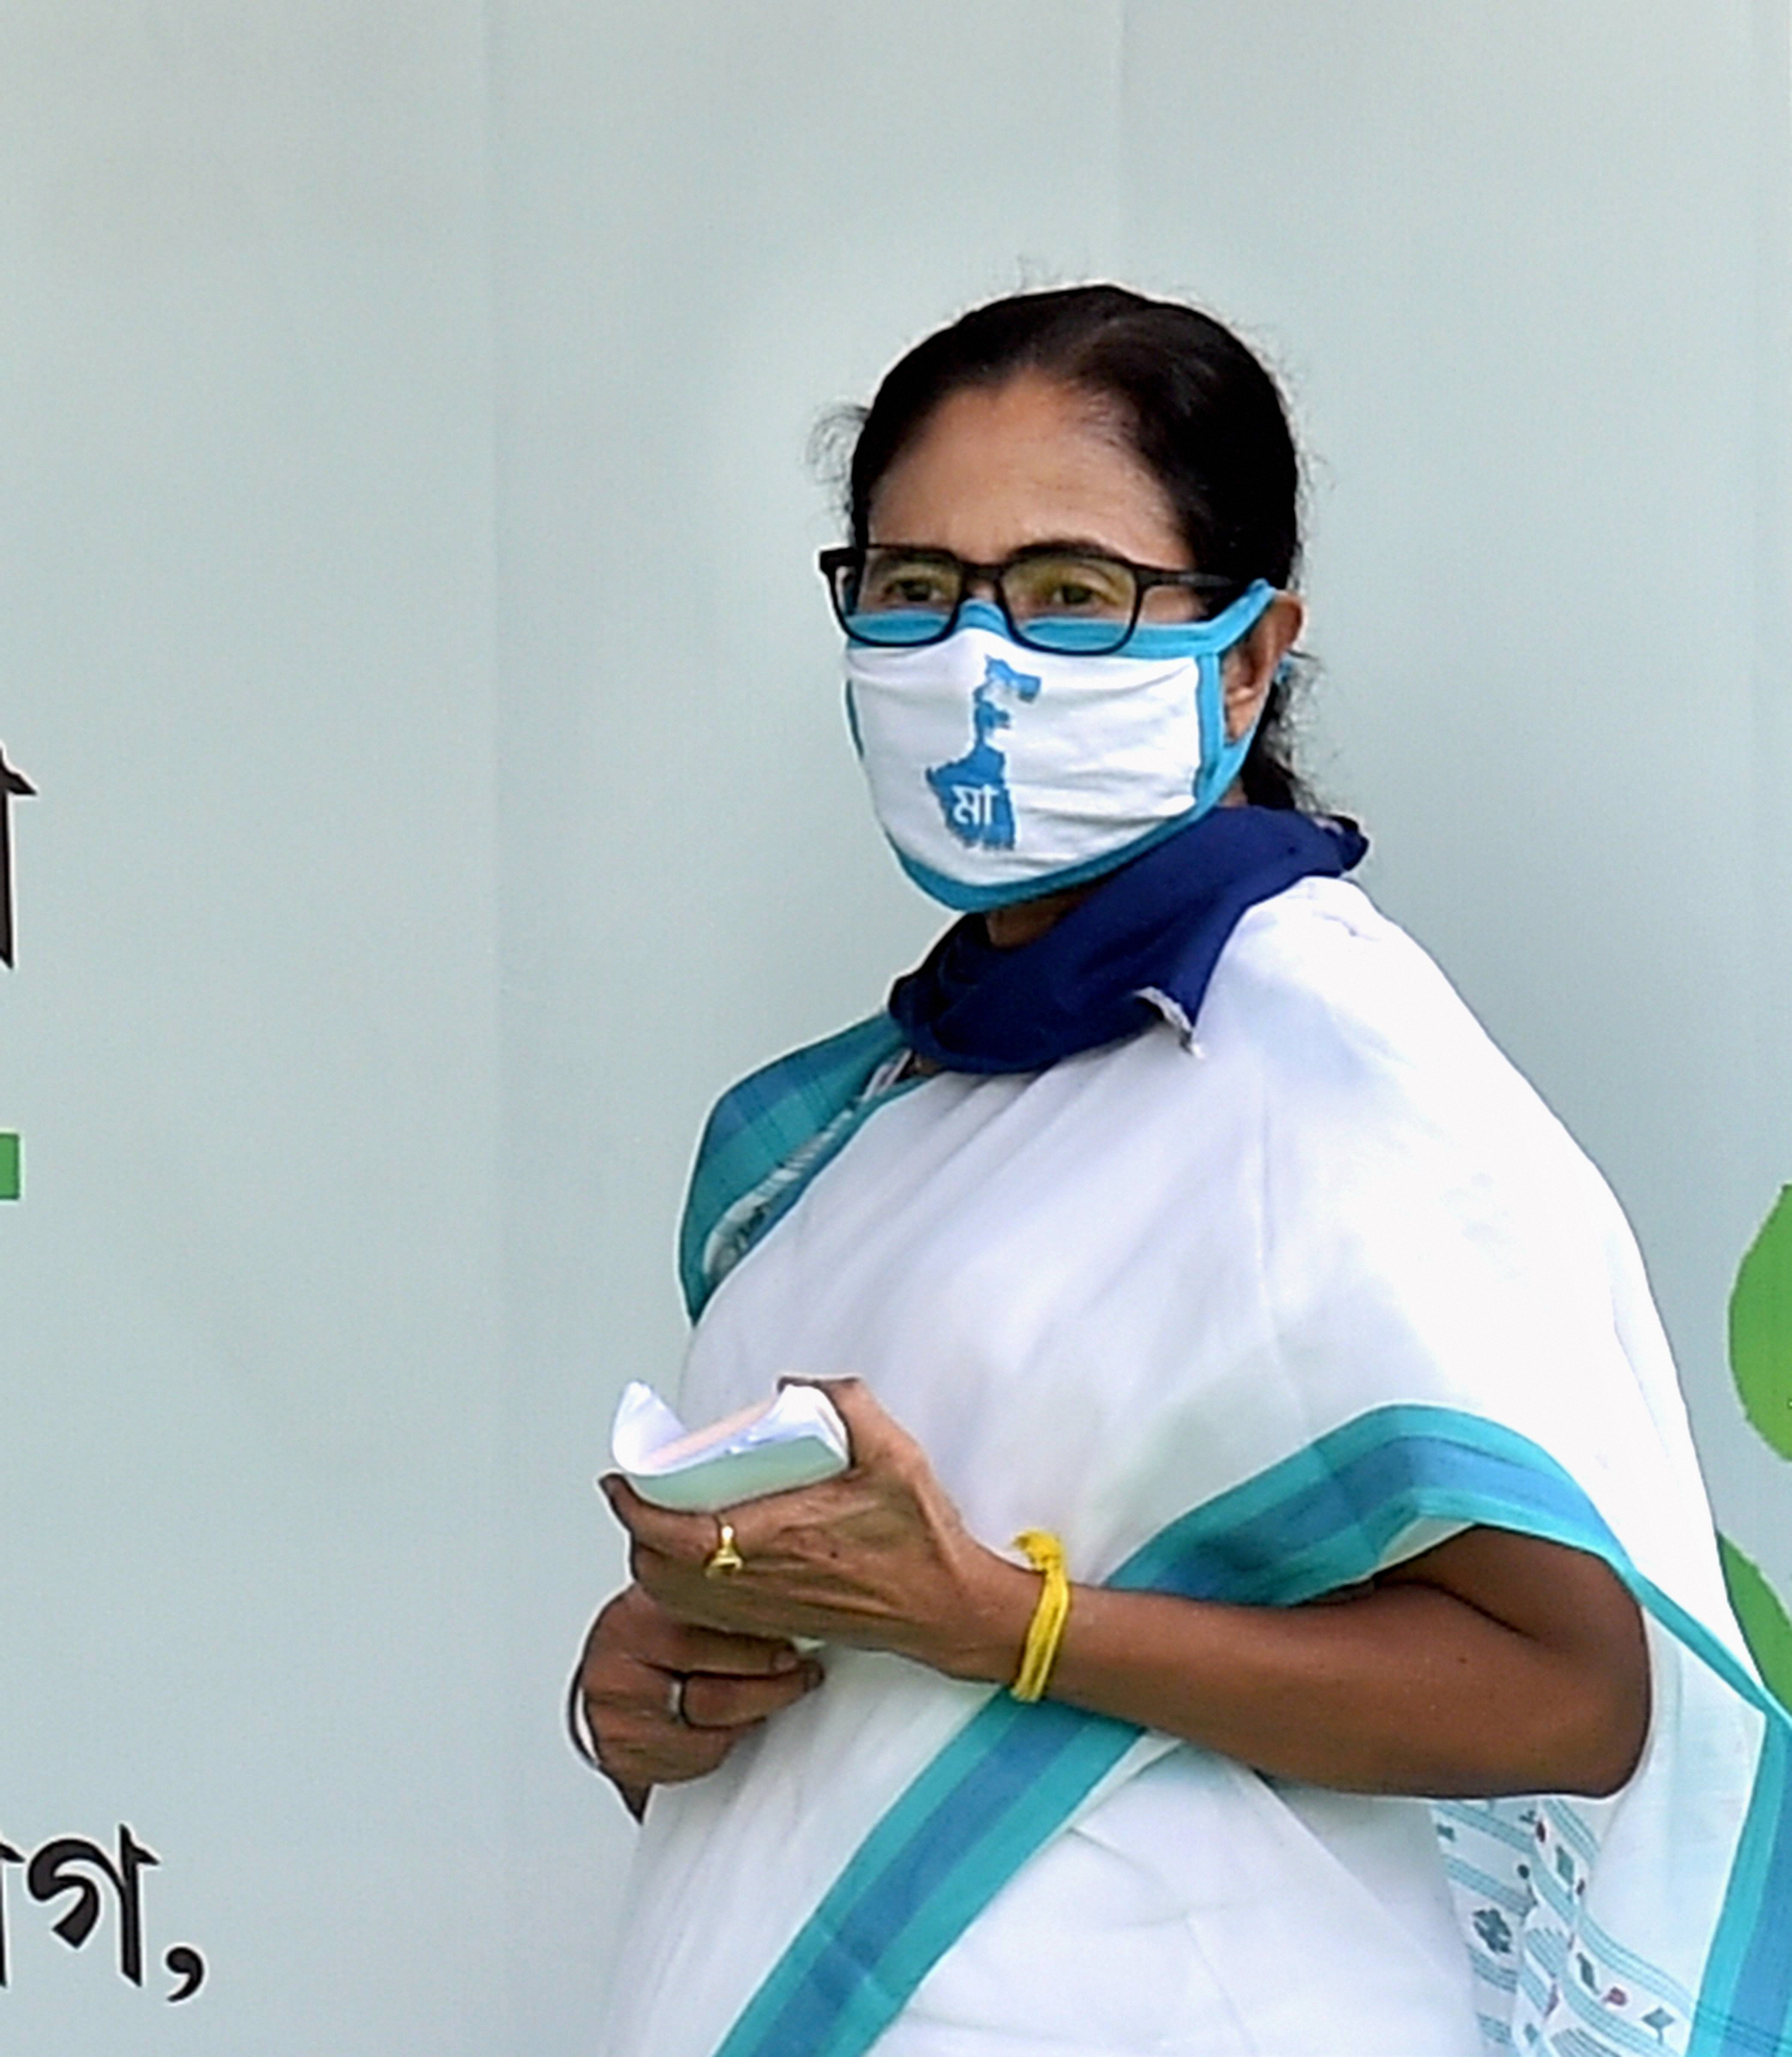 Mamata Banerjee during the inauguration of Re- Greening project on the occasion of World Environment day, during nationwide Covid-19 lockdown, in Calcutta, Friday, June 5, 2020.